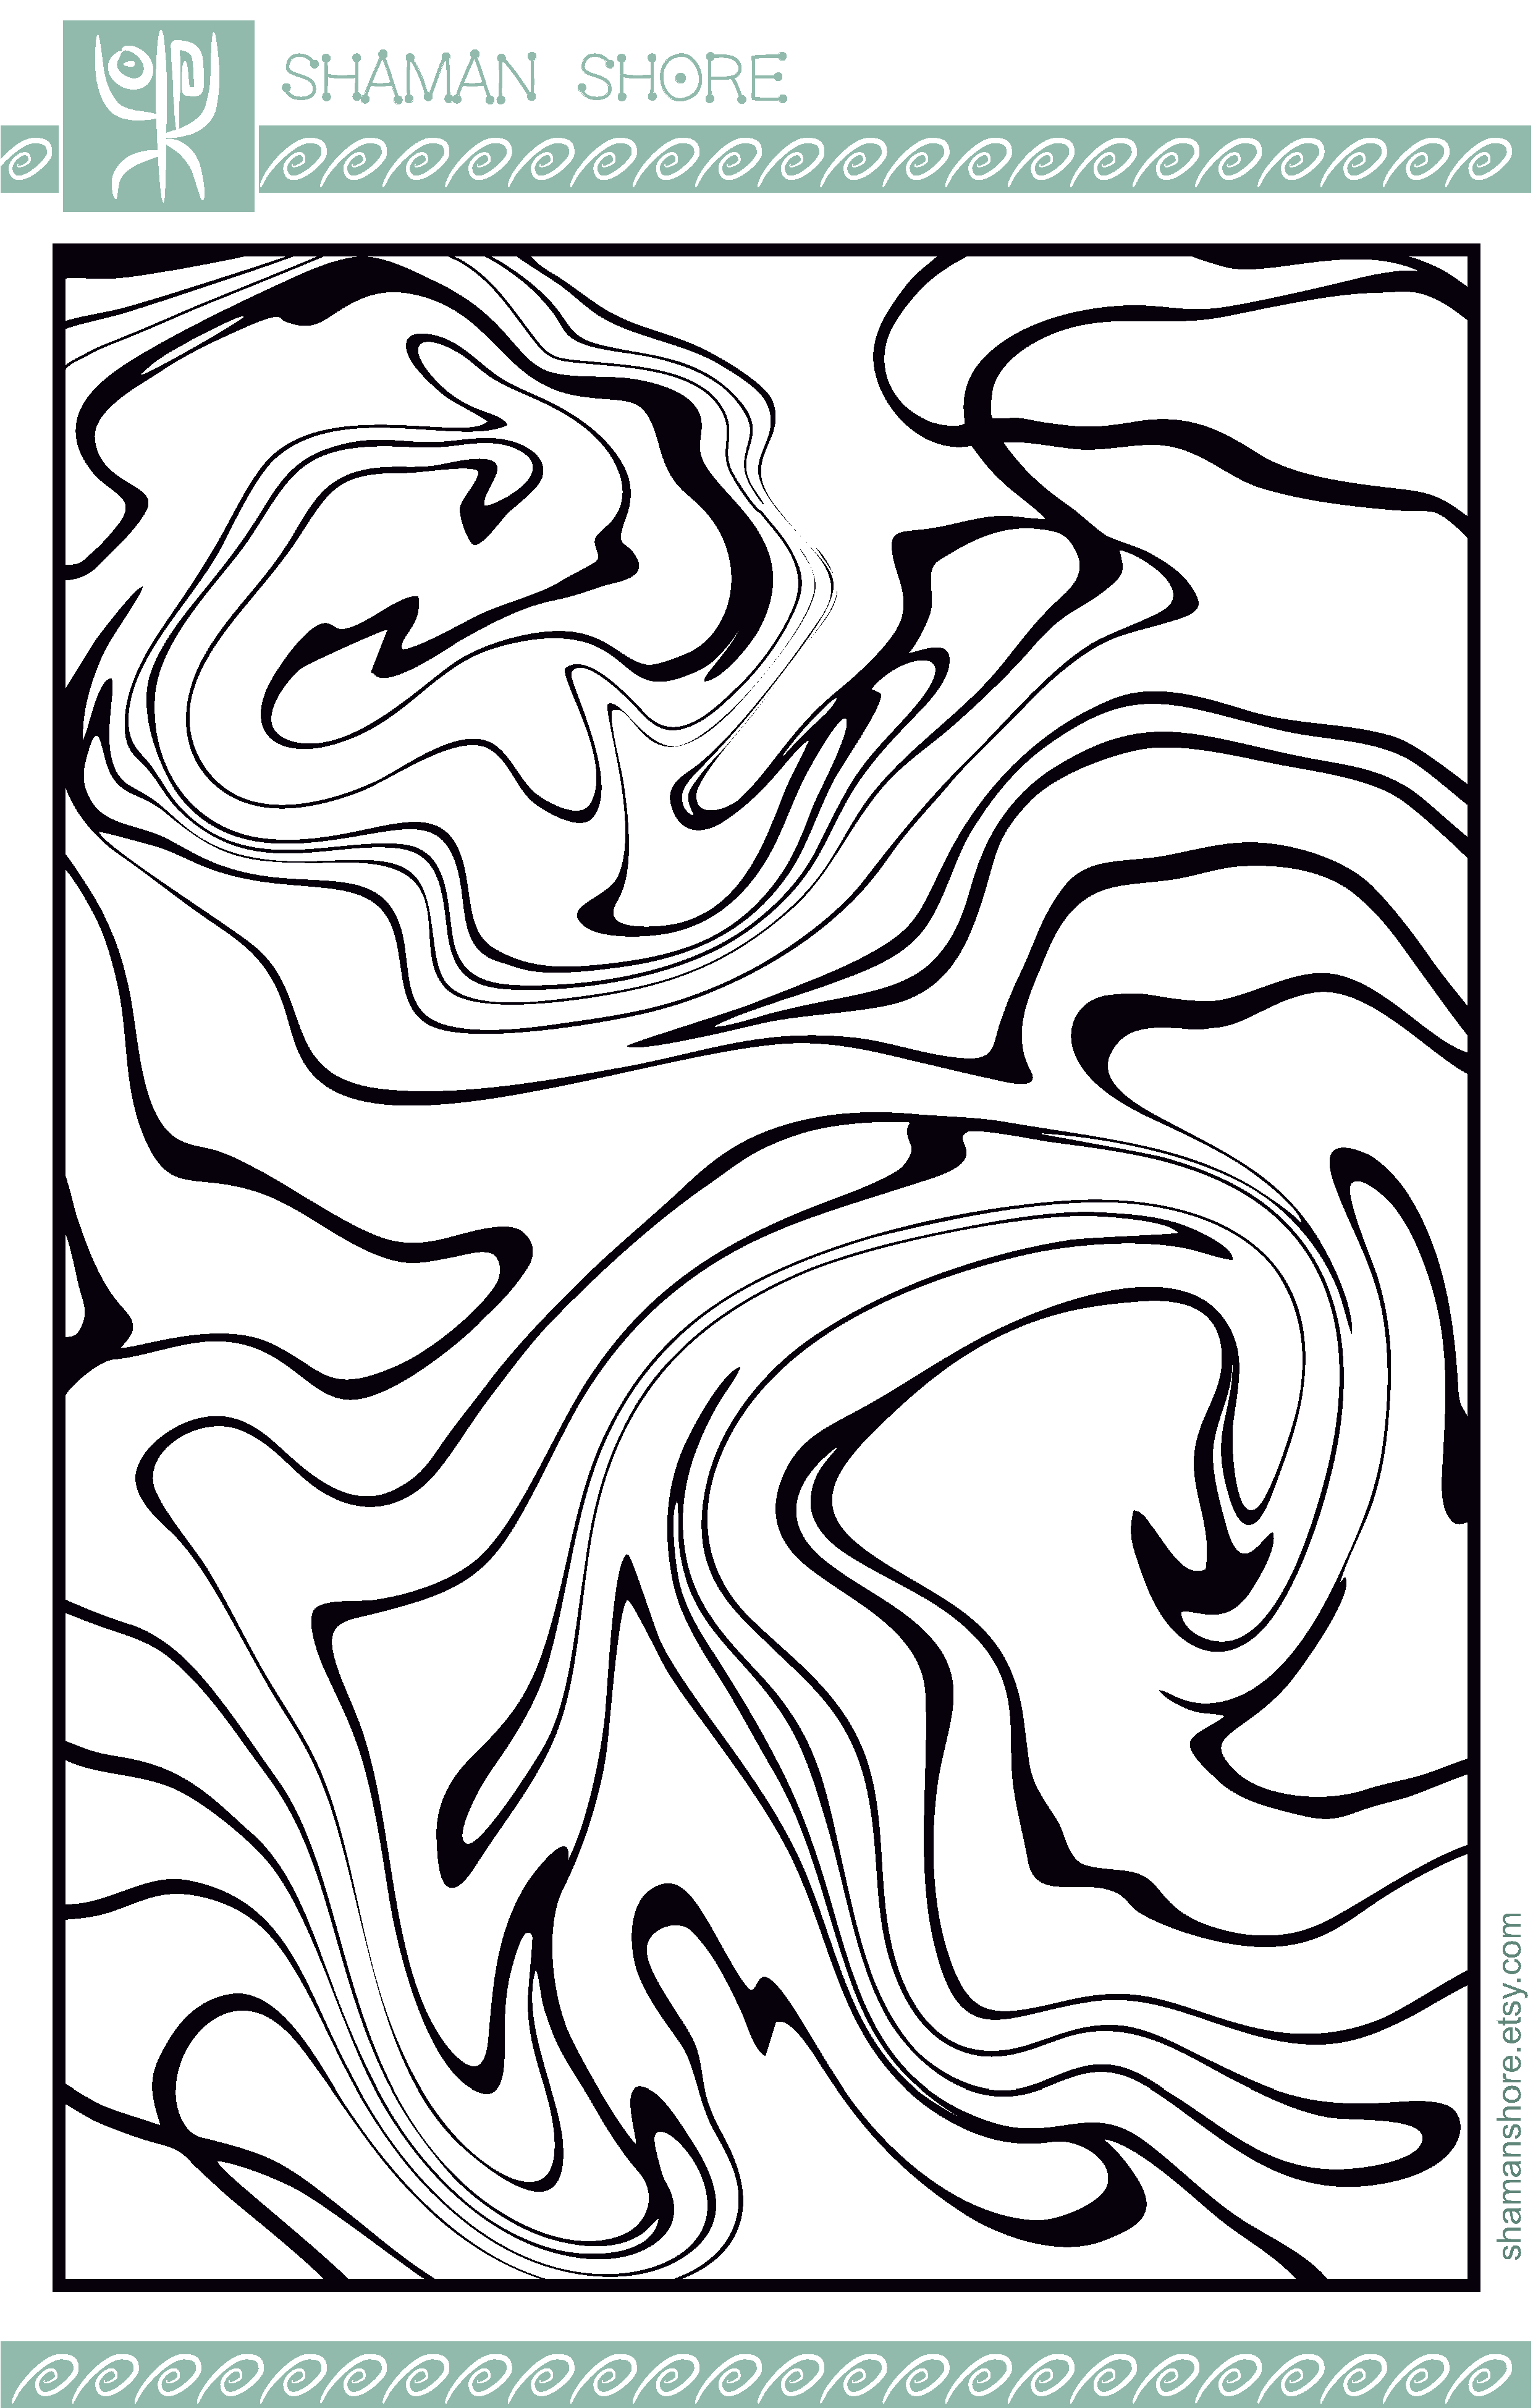 PDF Adult Coloring Book, Abstract Adult Digital Coloring